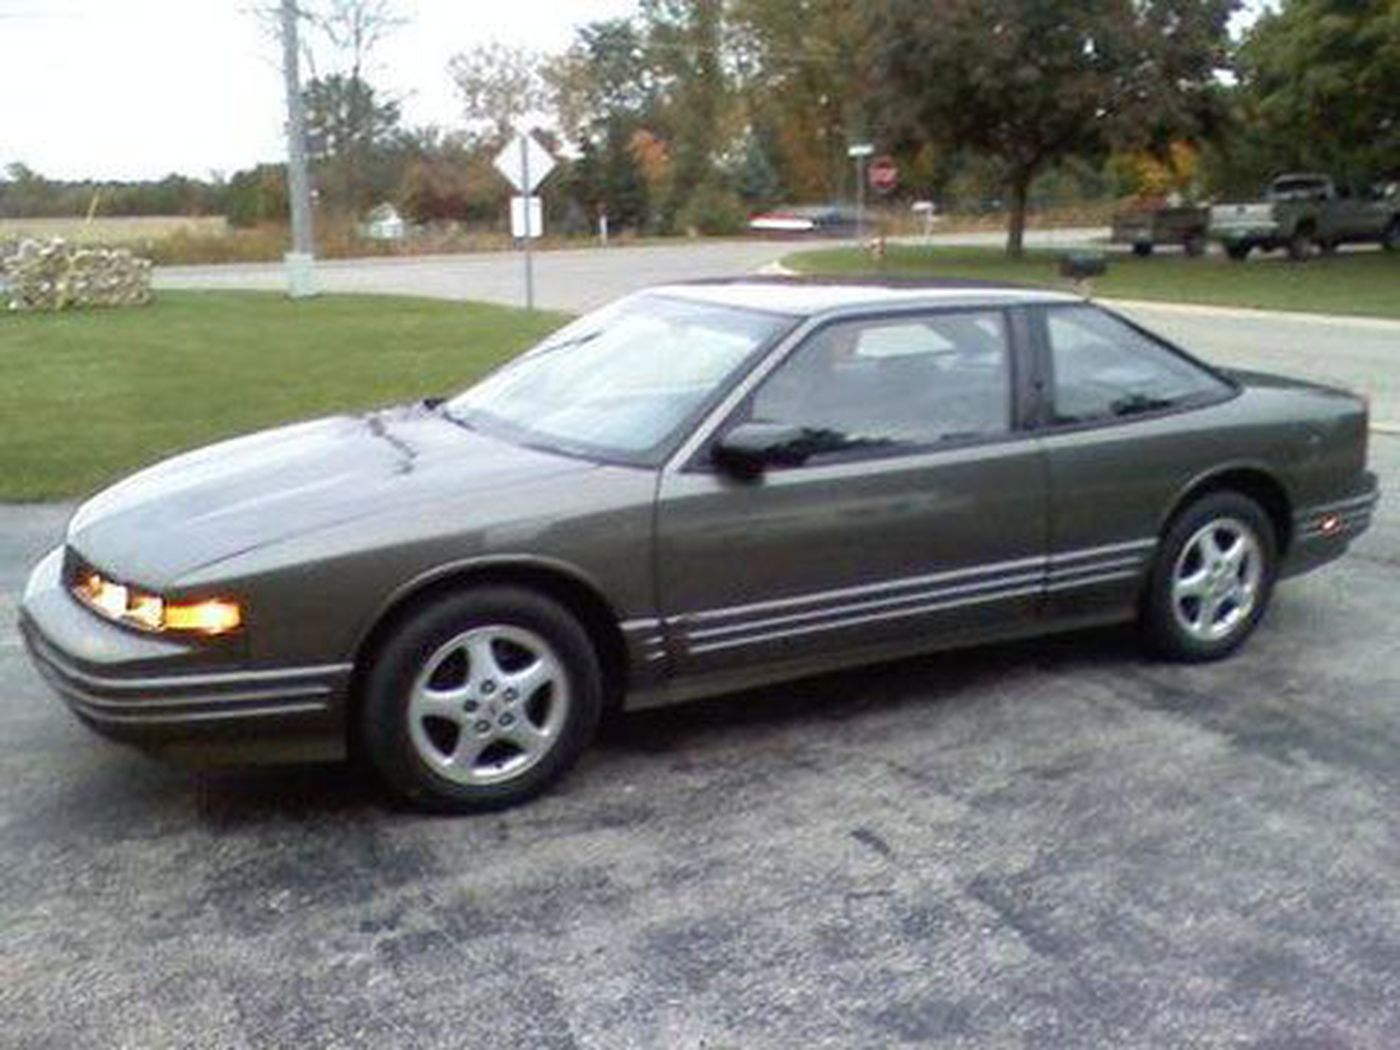 Rusk Man Seeking Publics Help In Locating Stolen Car Tattoo Equipment 1997 Oldsmobile Cutl Supreme Tx Ktre A Is Allegedly Who Stole His Cutlass From True Value Hardware Store Sunday